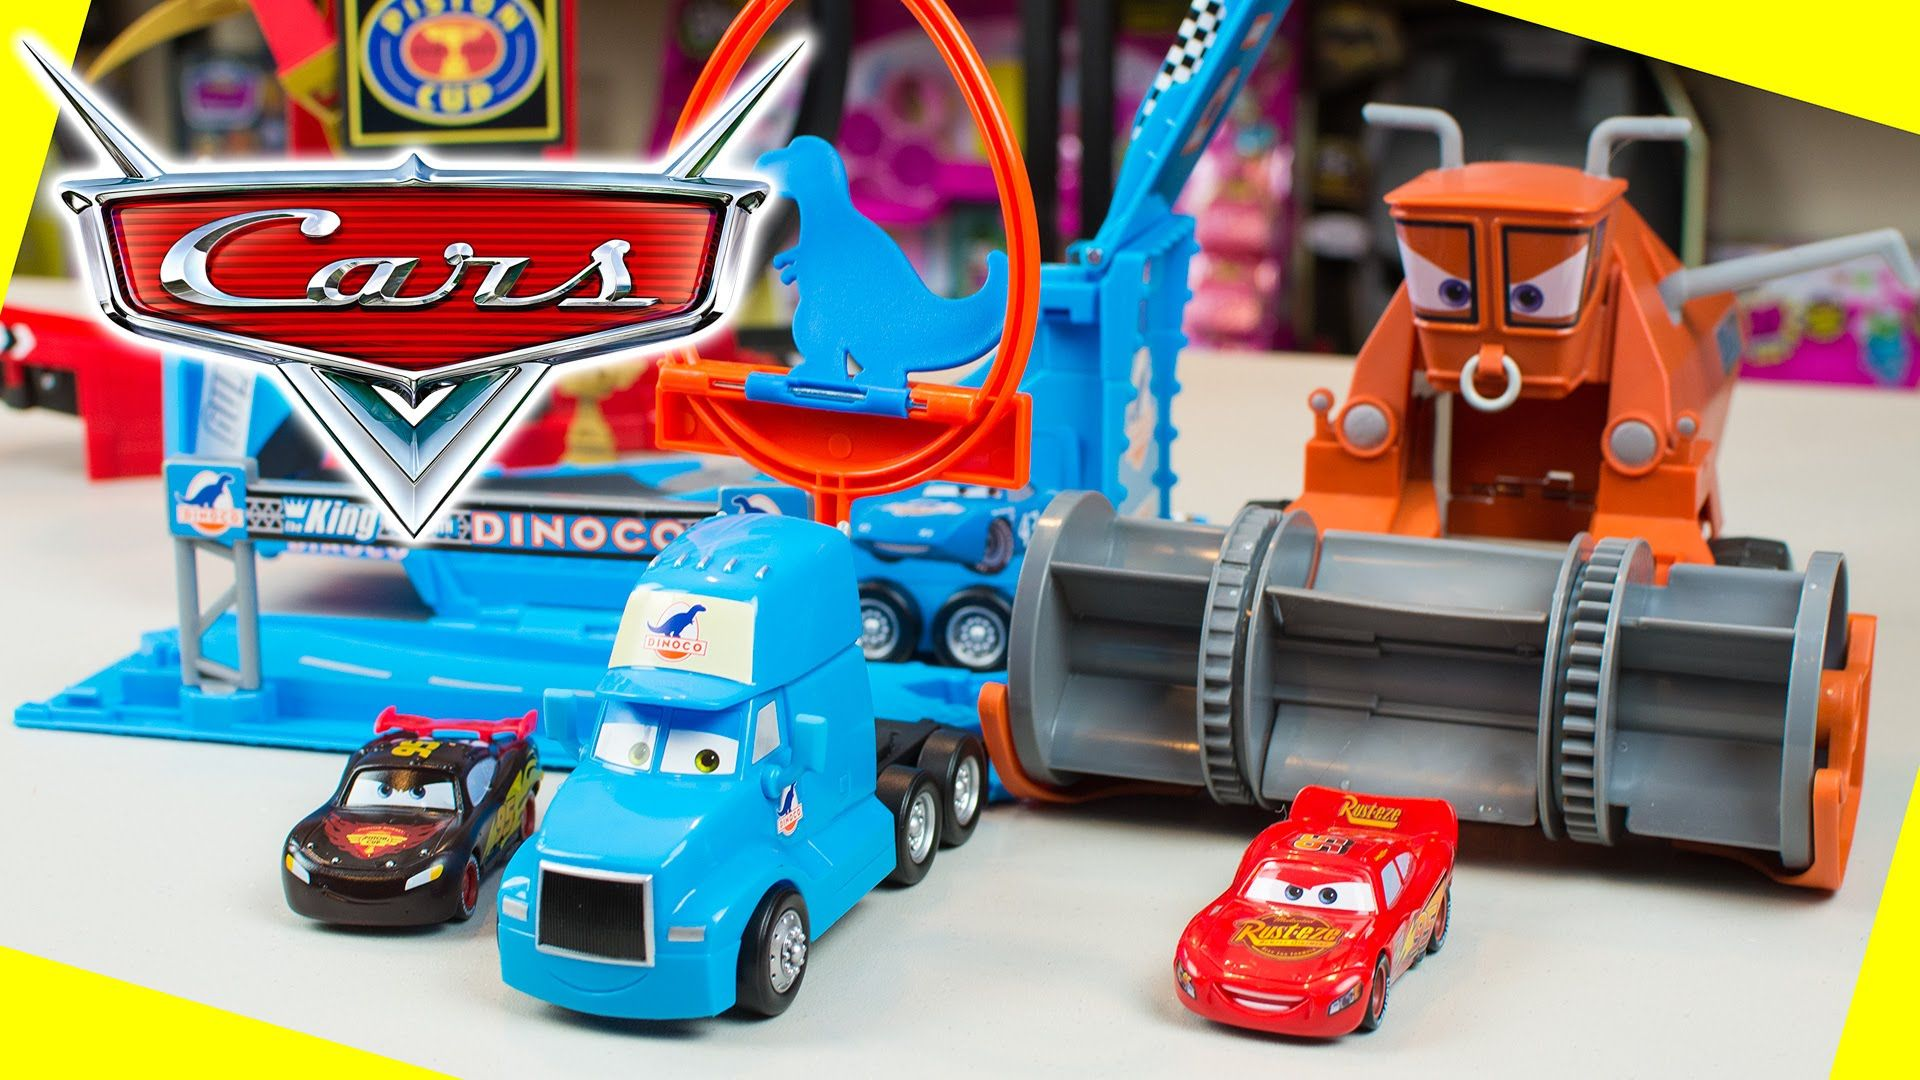 Toys For Boys To Color : Disney cars lightning mcqueen toys color changers playsets by mattel